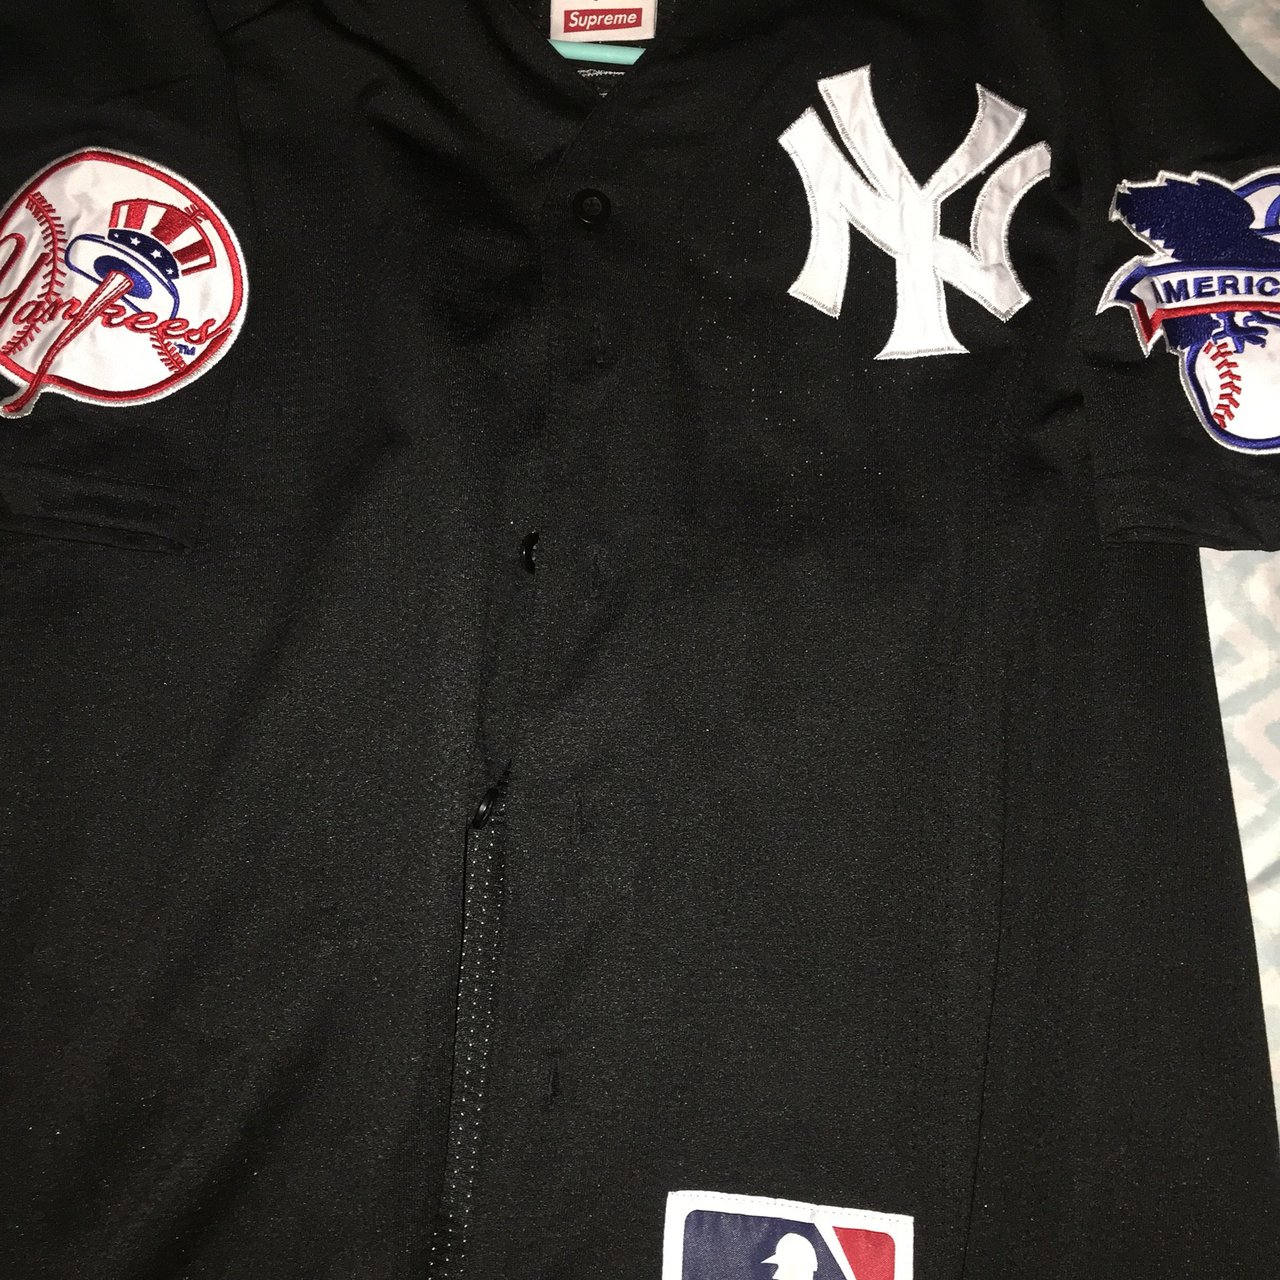 Supreme x Yankees Baseball Jersey Color  Black Size  9 10 - Depop 5c2c98f03fd